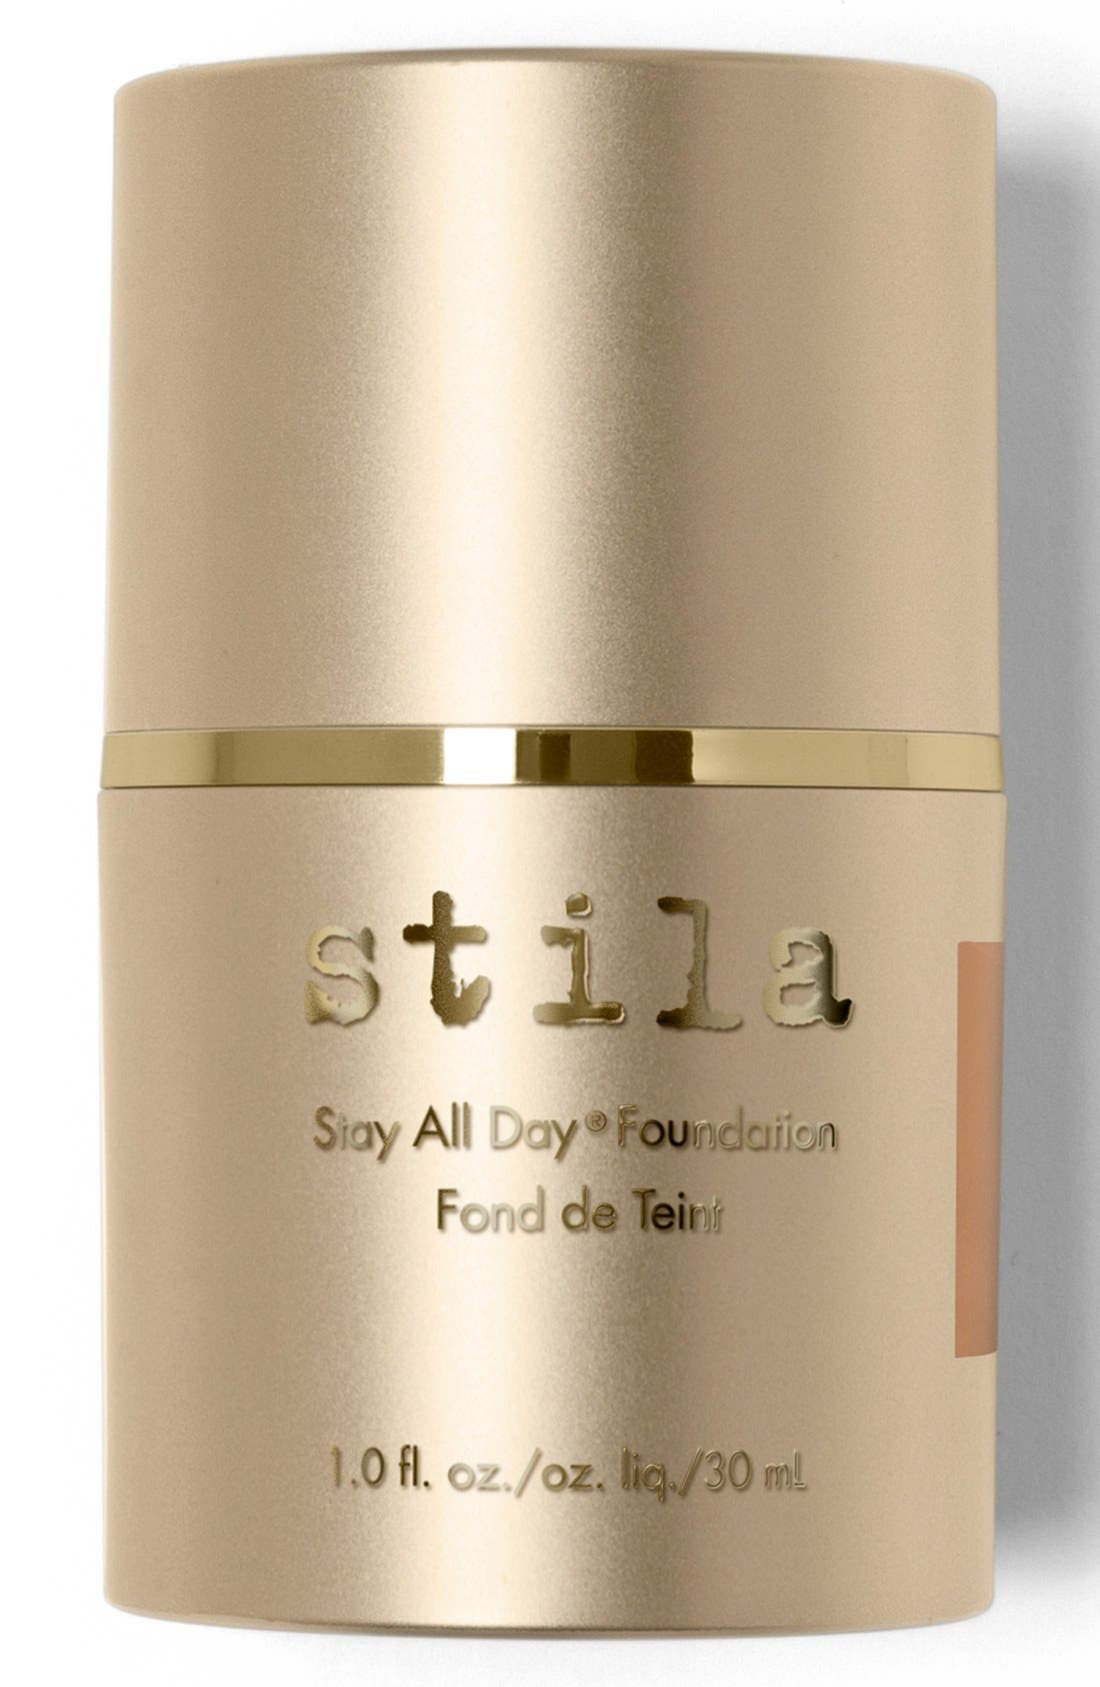 stila 'stay all day' foundation